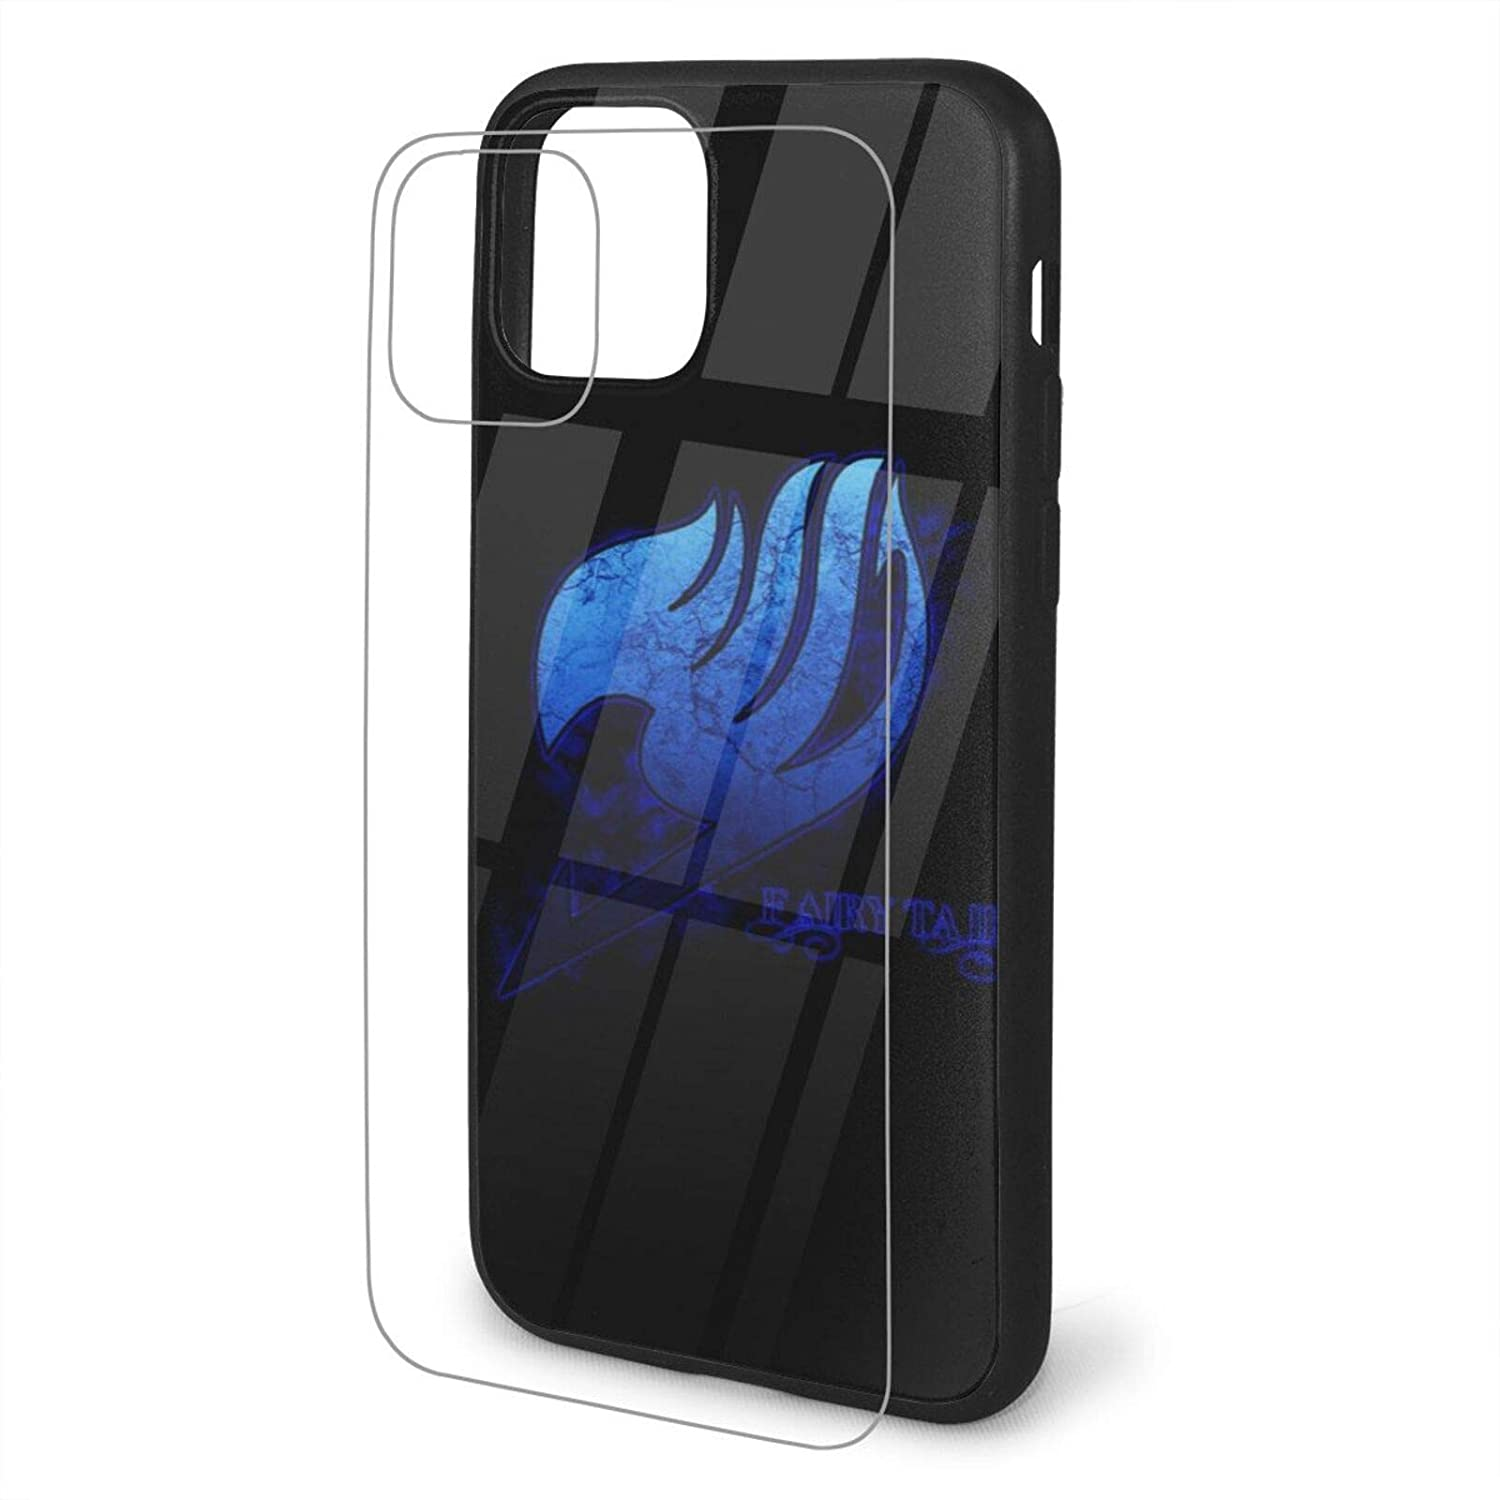 iPhone 11 Pro Max Case, Anime Fairy Tail [Tempered Glass Back] with Soft TPU Bumper Cover Shockproof Thin Slim Phone Case